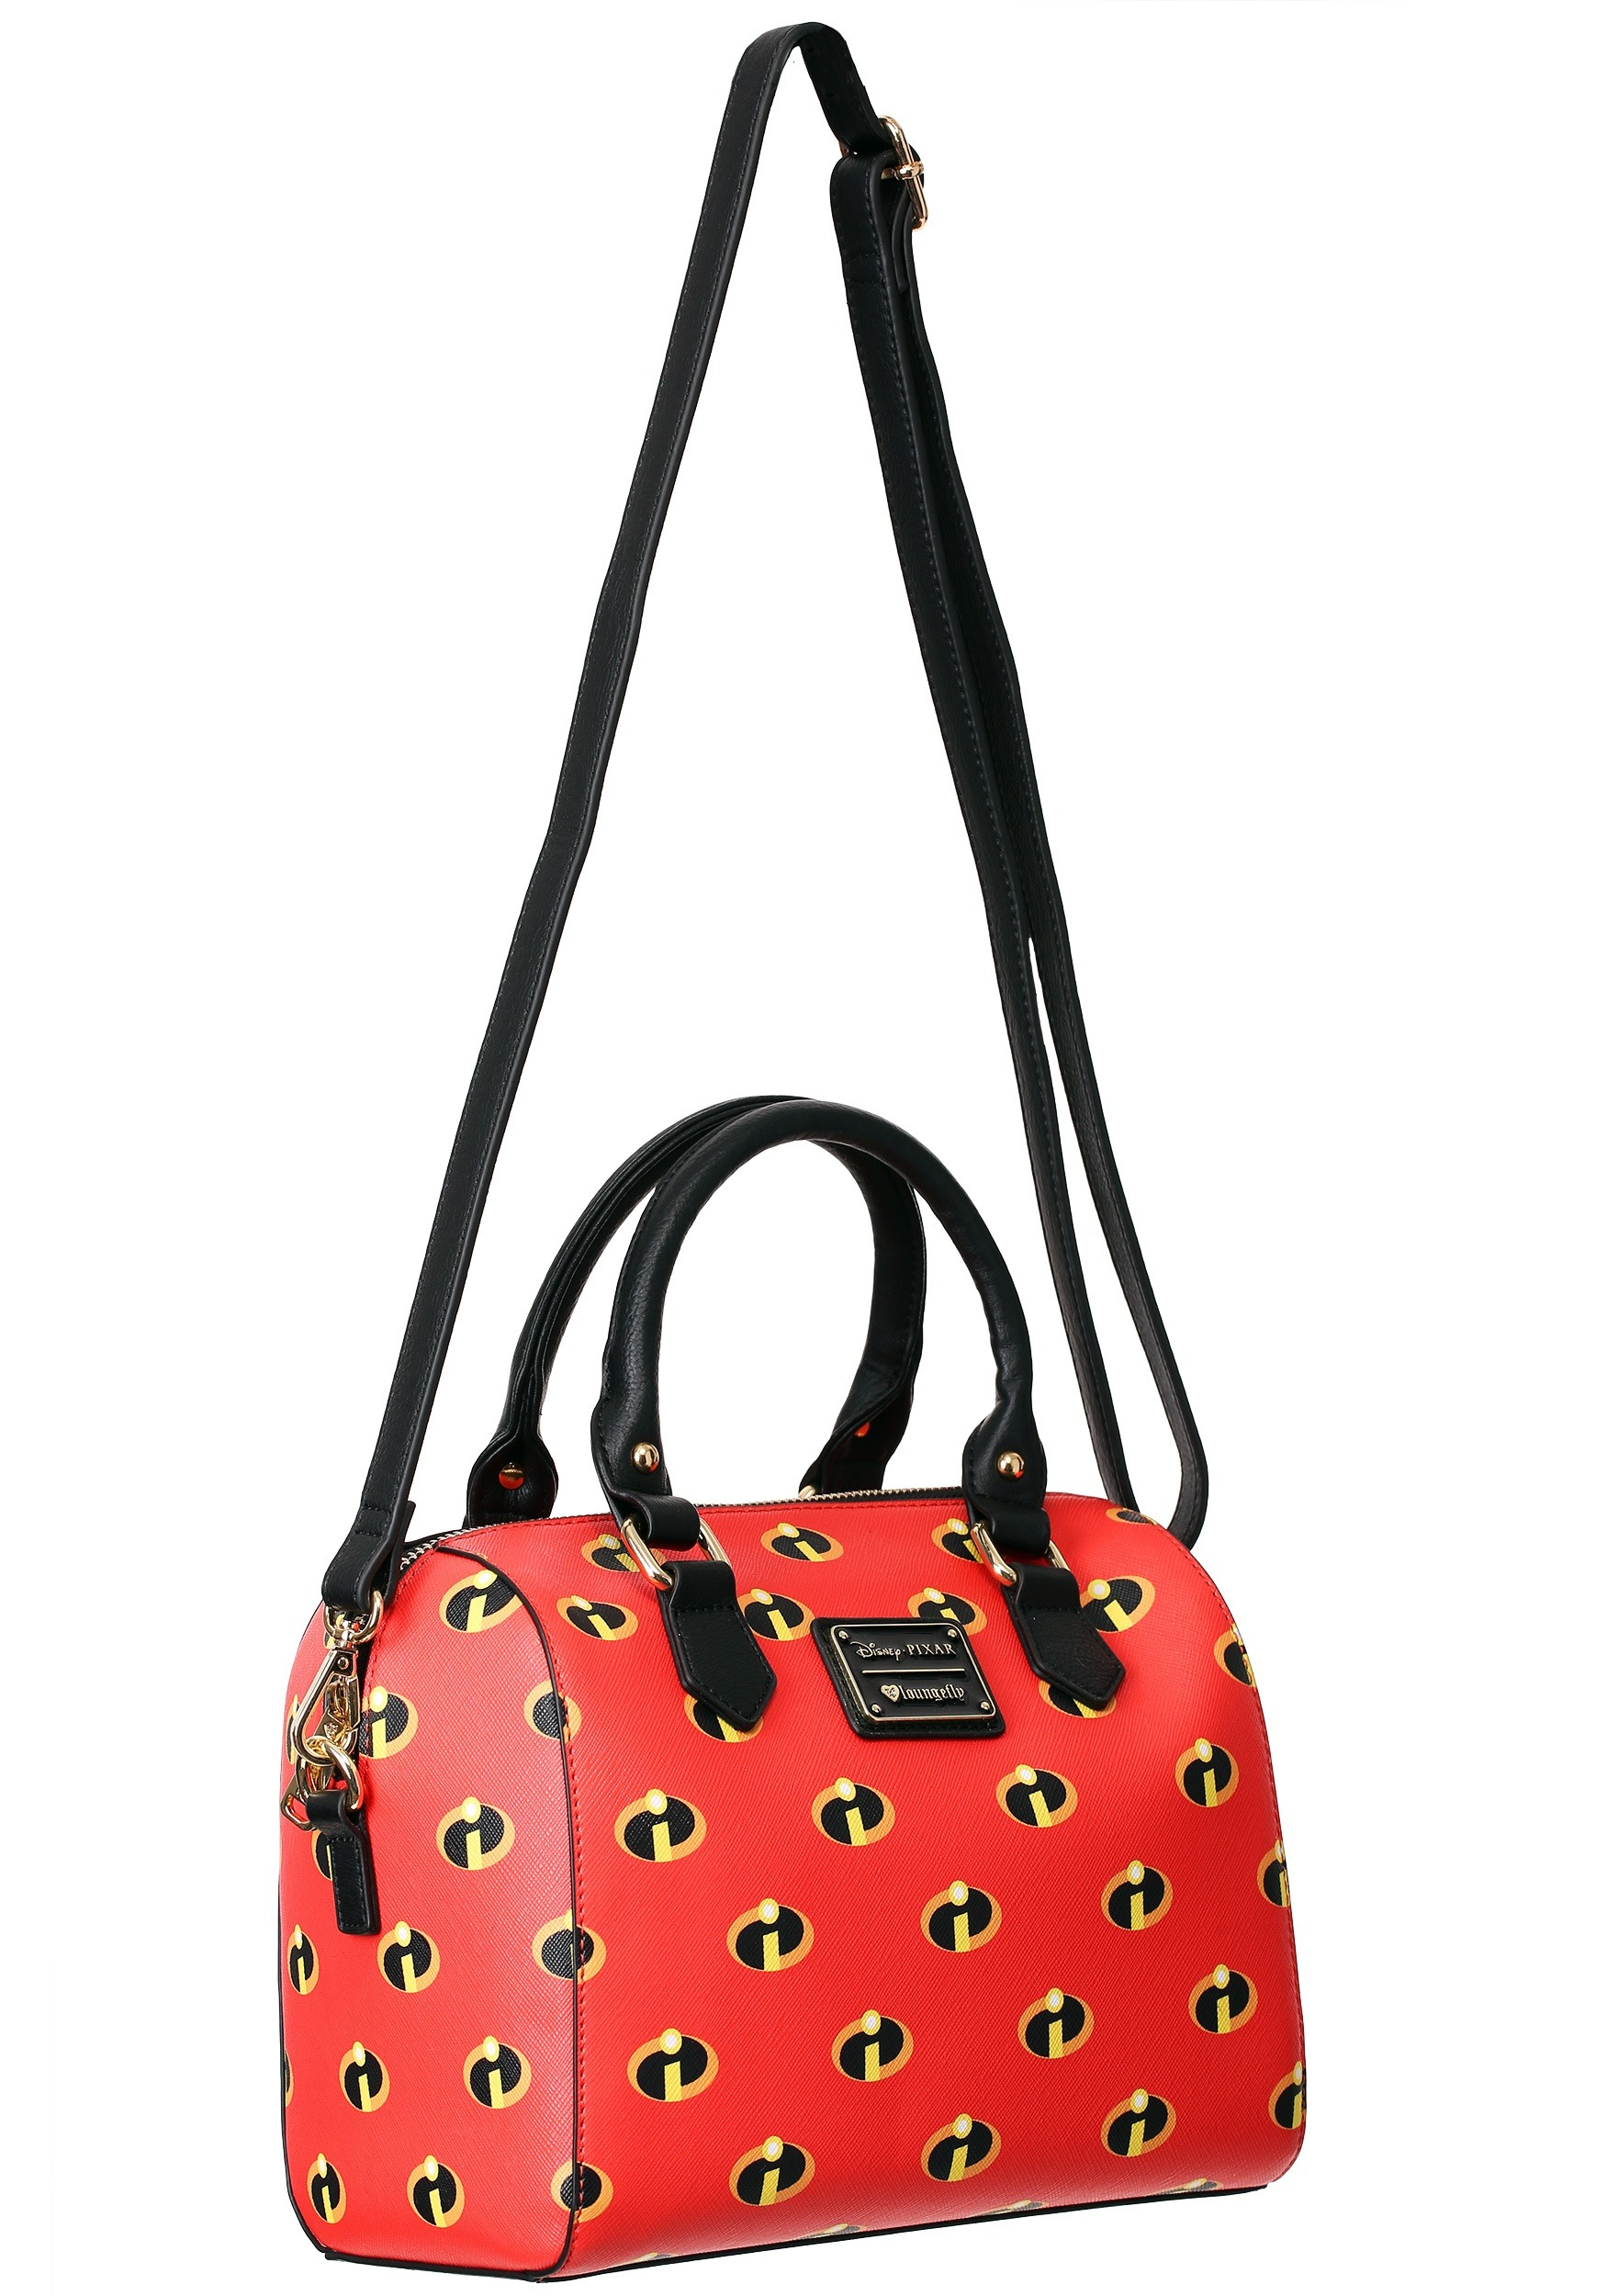 676afa97a46e Loungefly Disney Incredibles Satchel Crossbody Purse